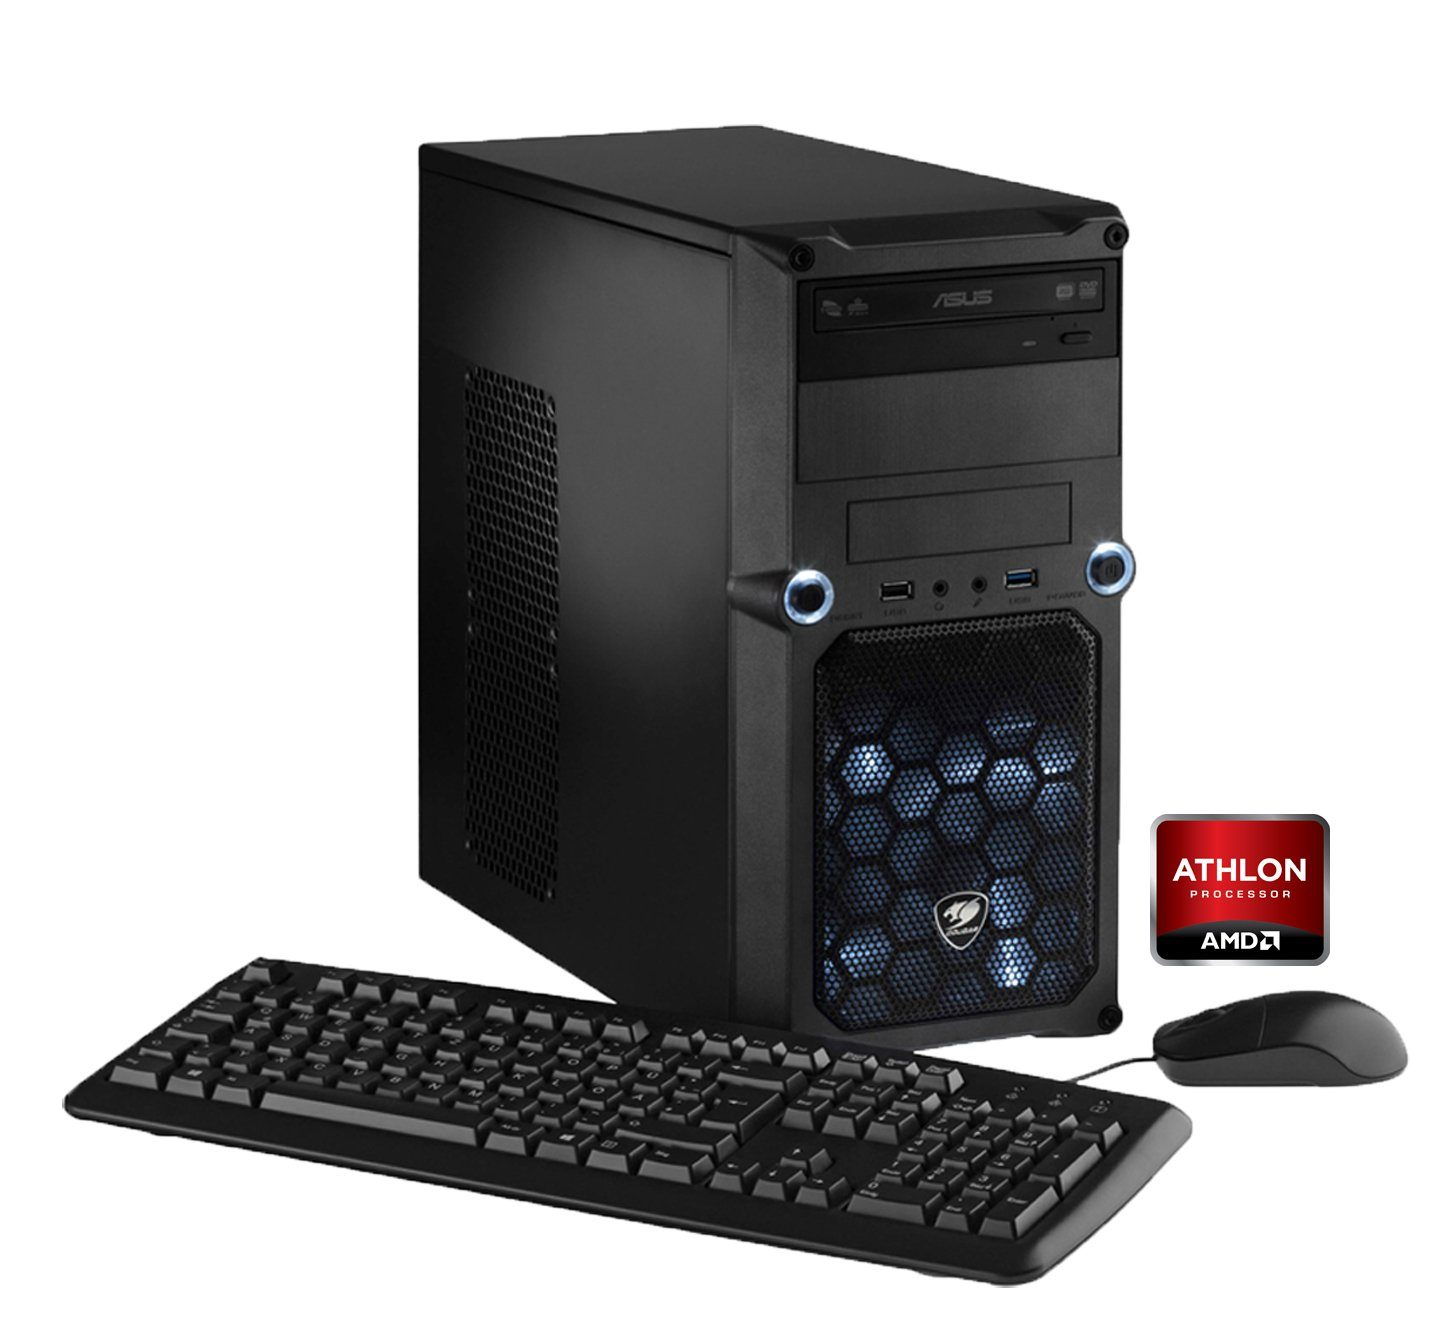 Hyrican Gaming PC AMD X4 880K, 16GB, 1TB, 120 SSD, GTX 950, Windows 10 »CyberGamer 5104«